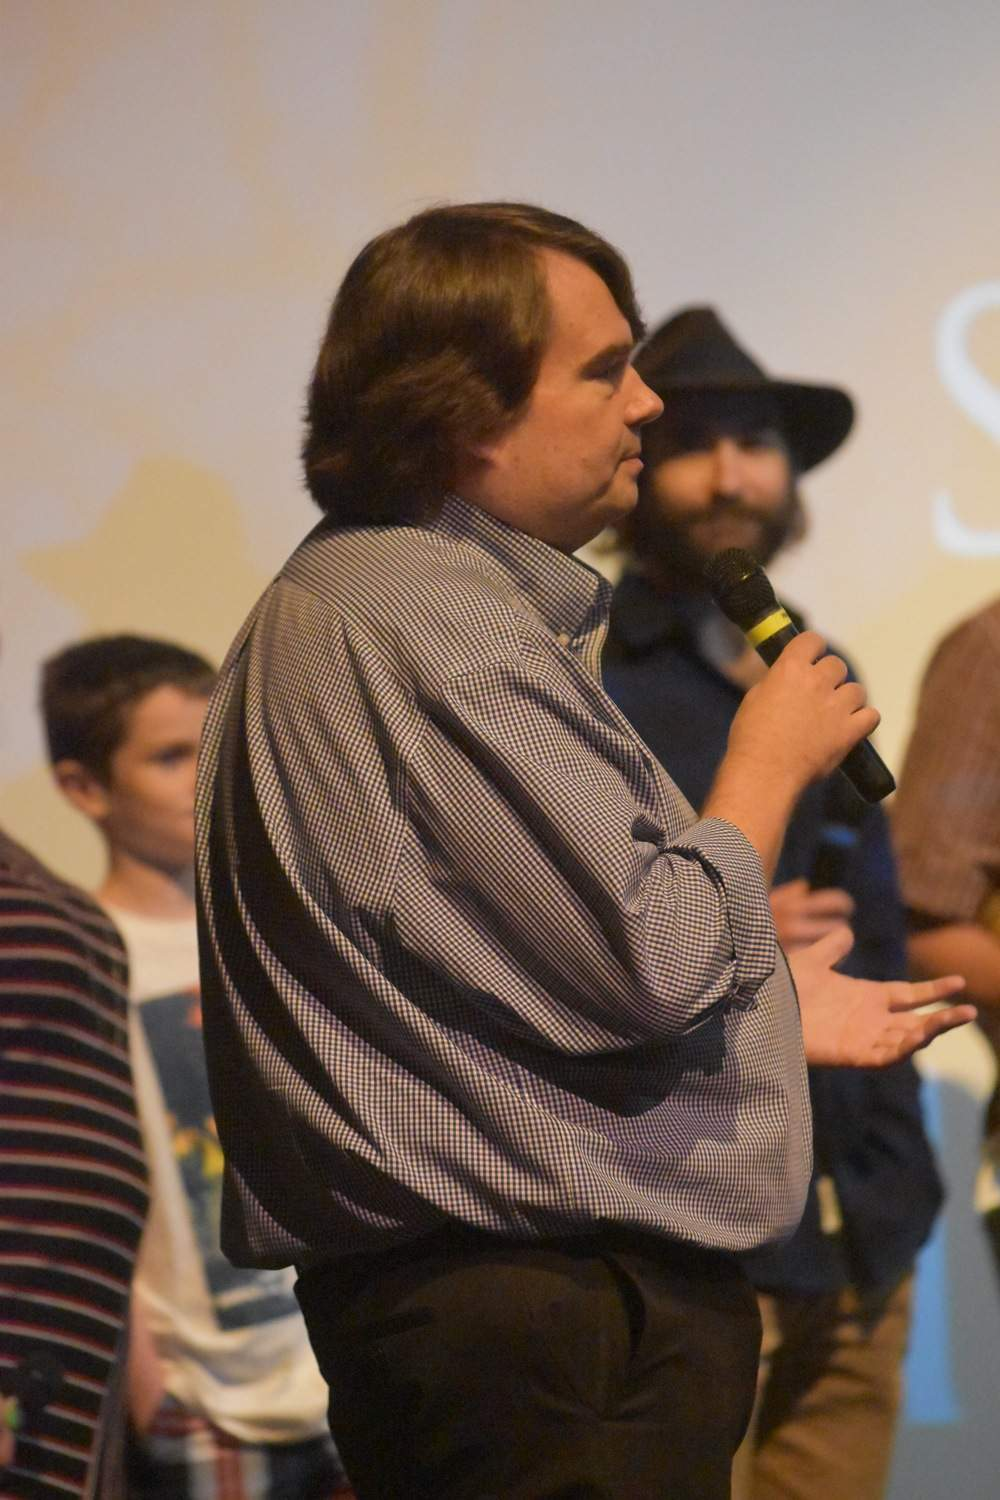 Jon Musgrave, local historian and event coordinator for Saturday night's screening, fields questions from audience members for director Hunter Adams.